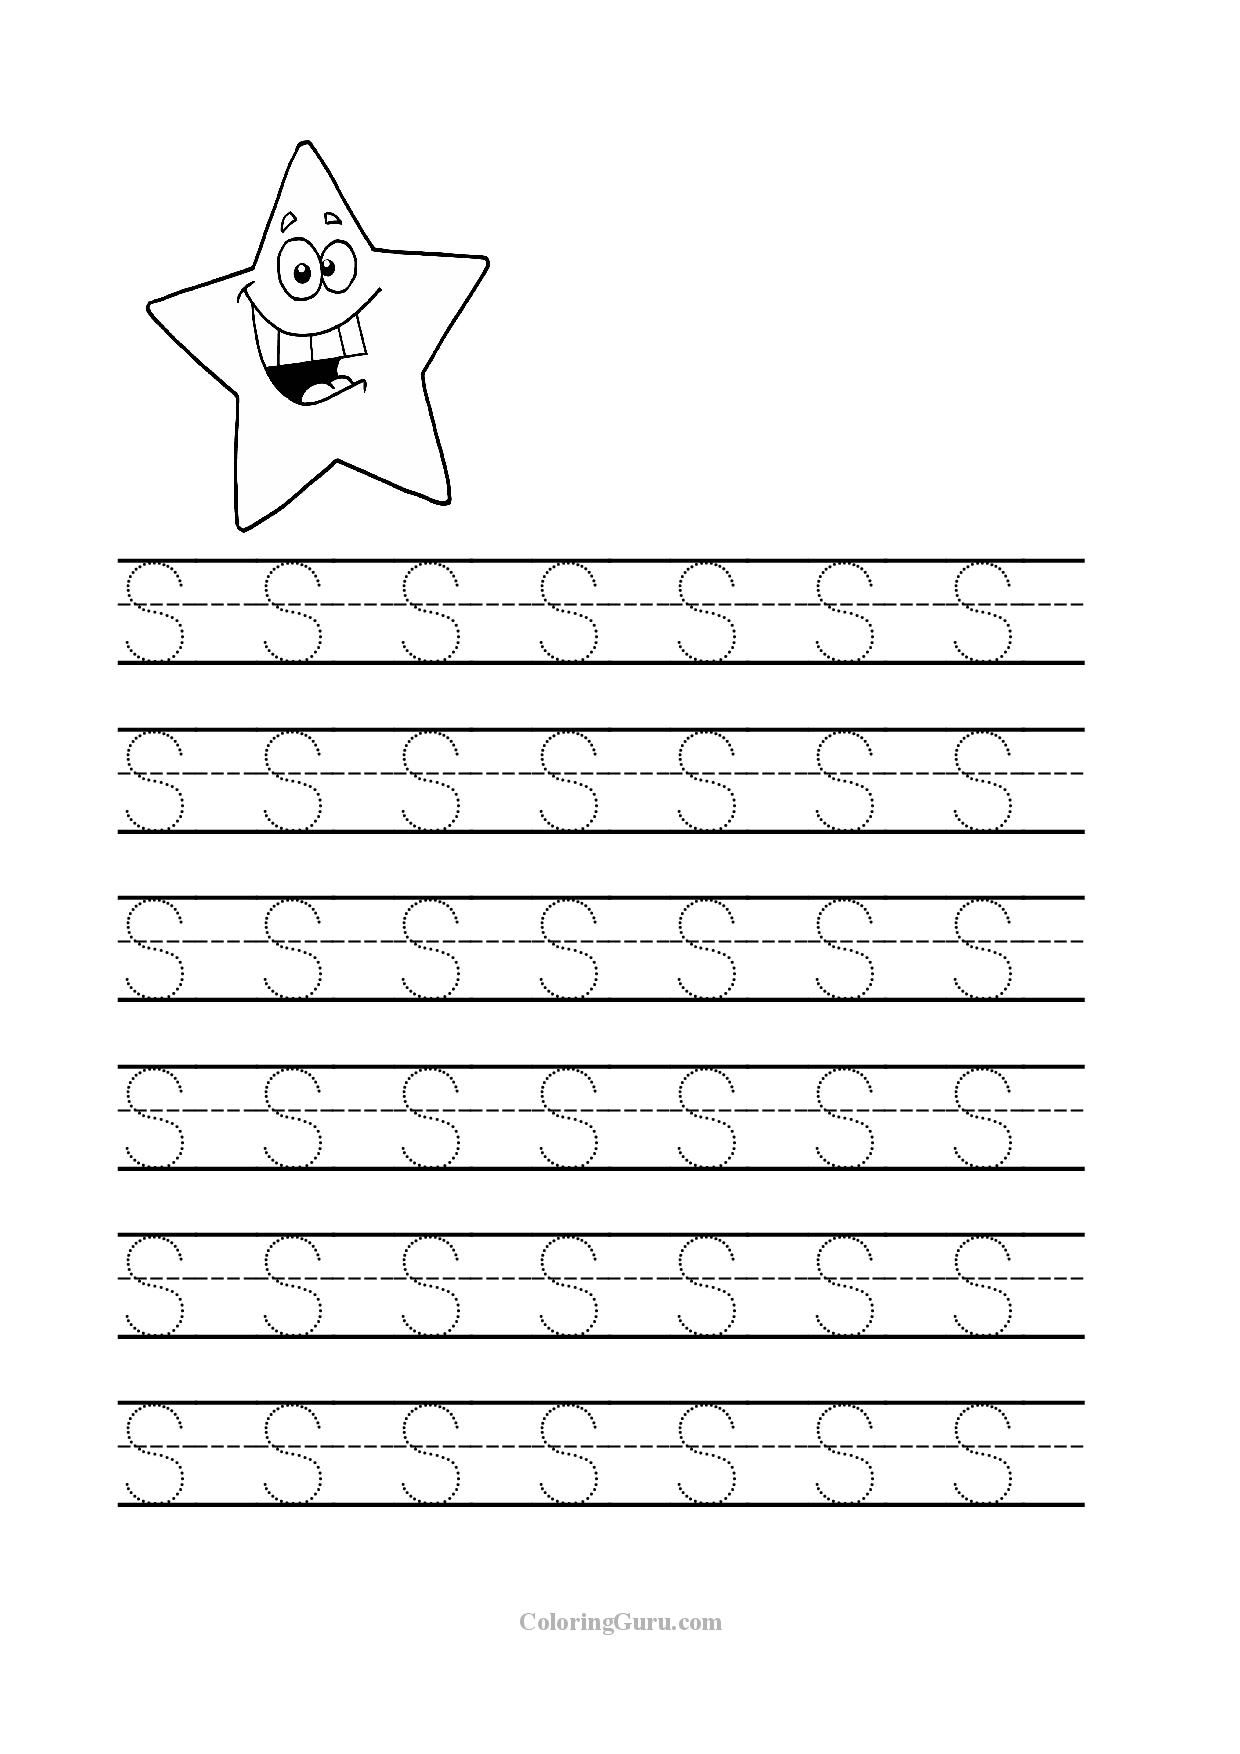 Free Printable Tracing Letter S Worksheets For Preschool | Teaching | Free Printable Worksheets For Preschool Teachers